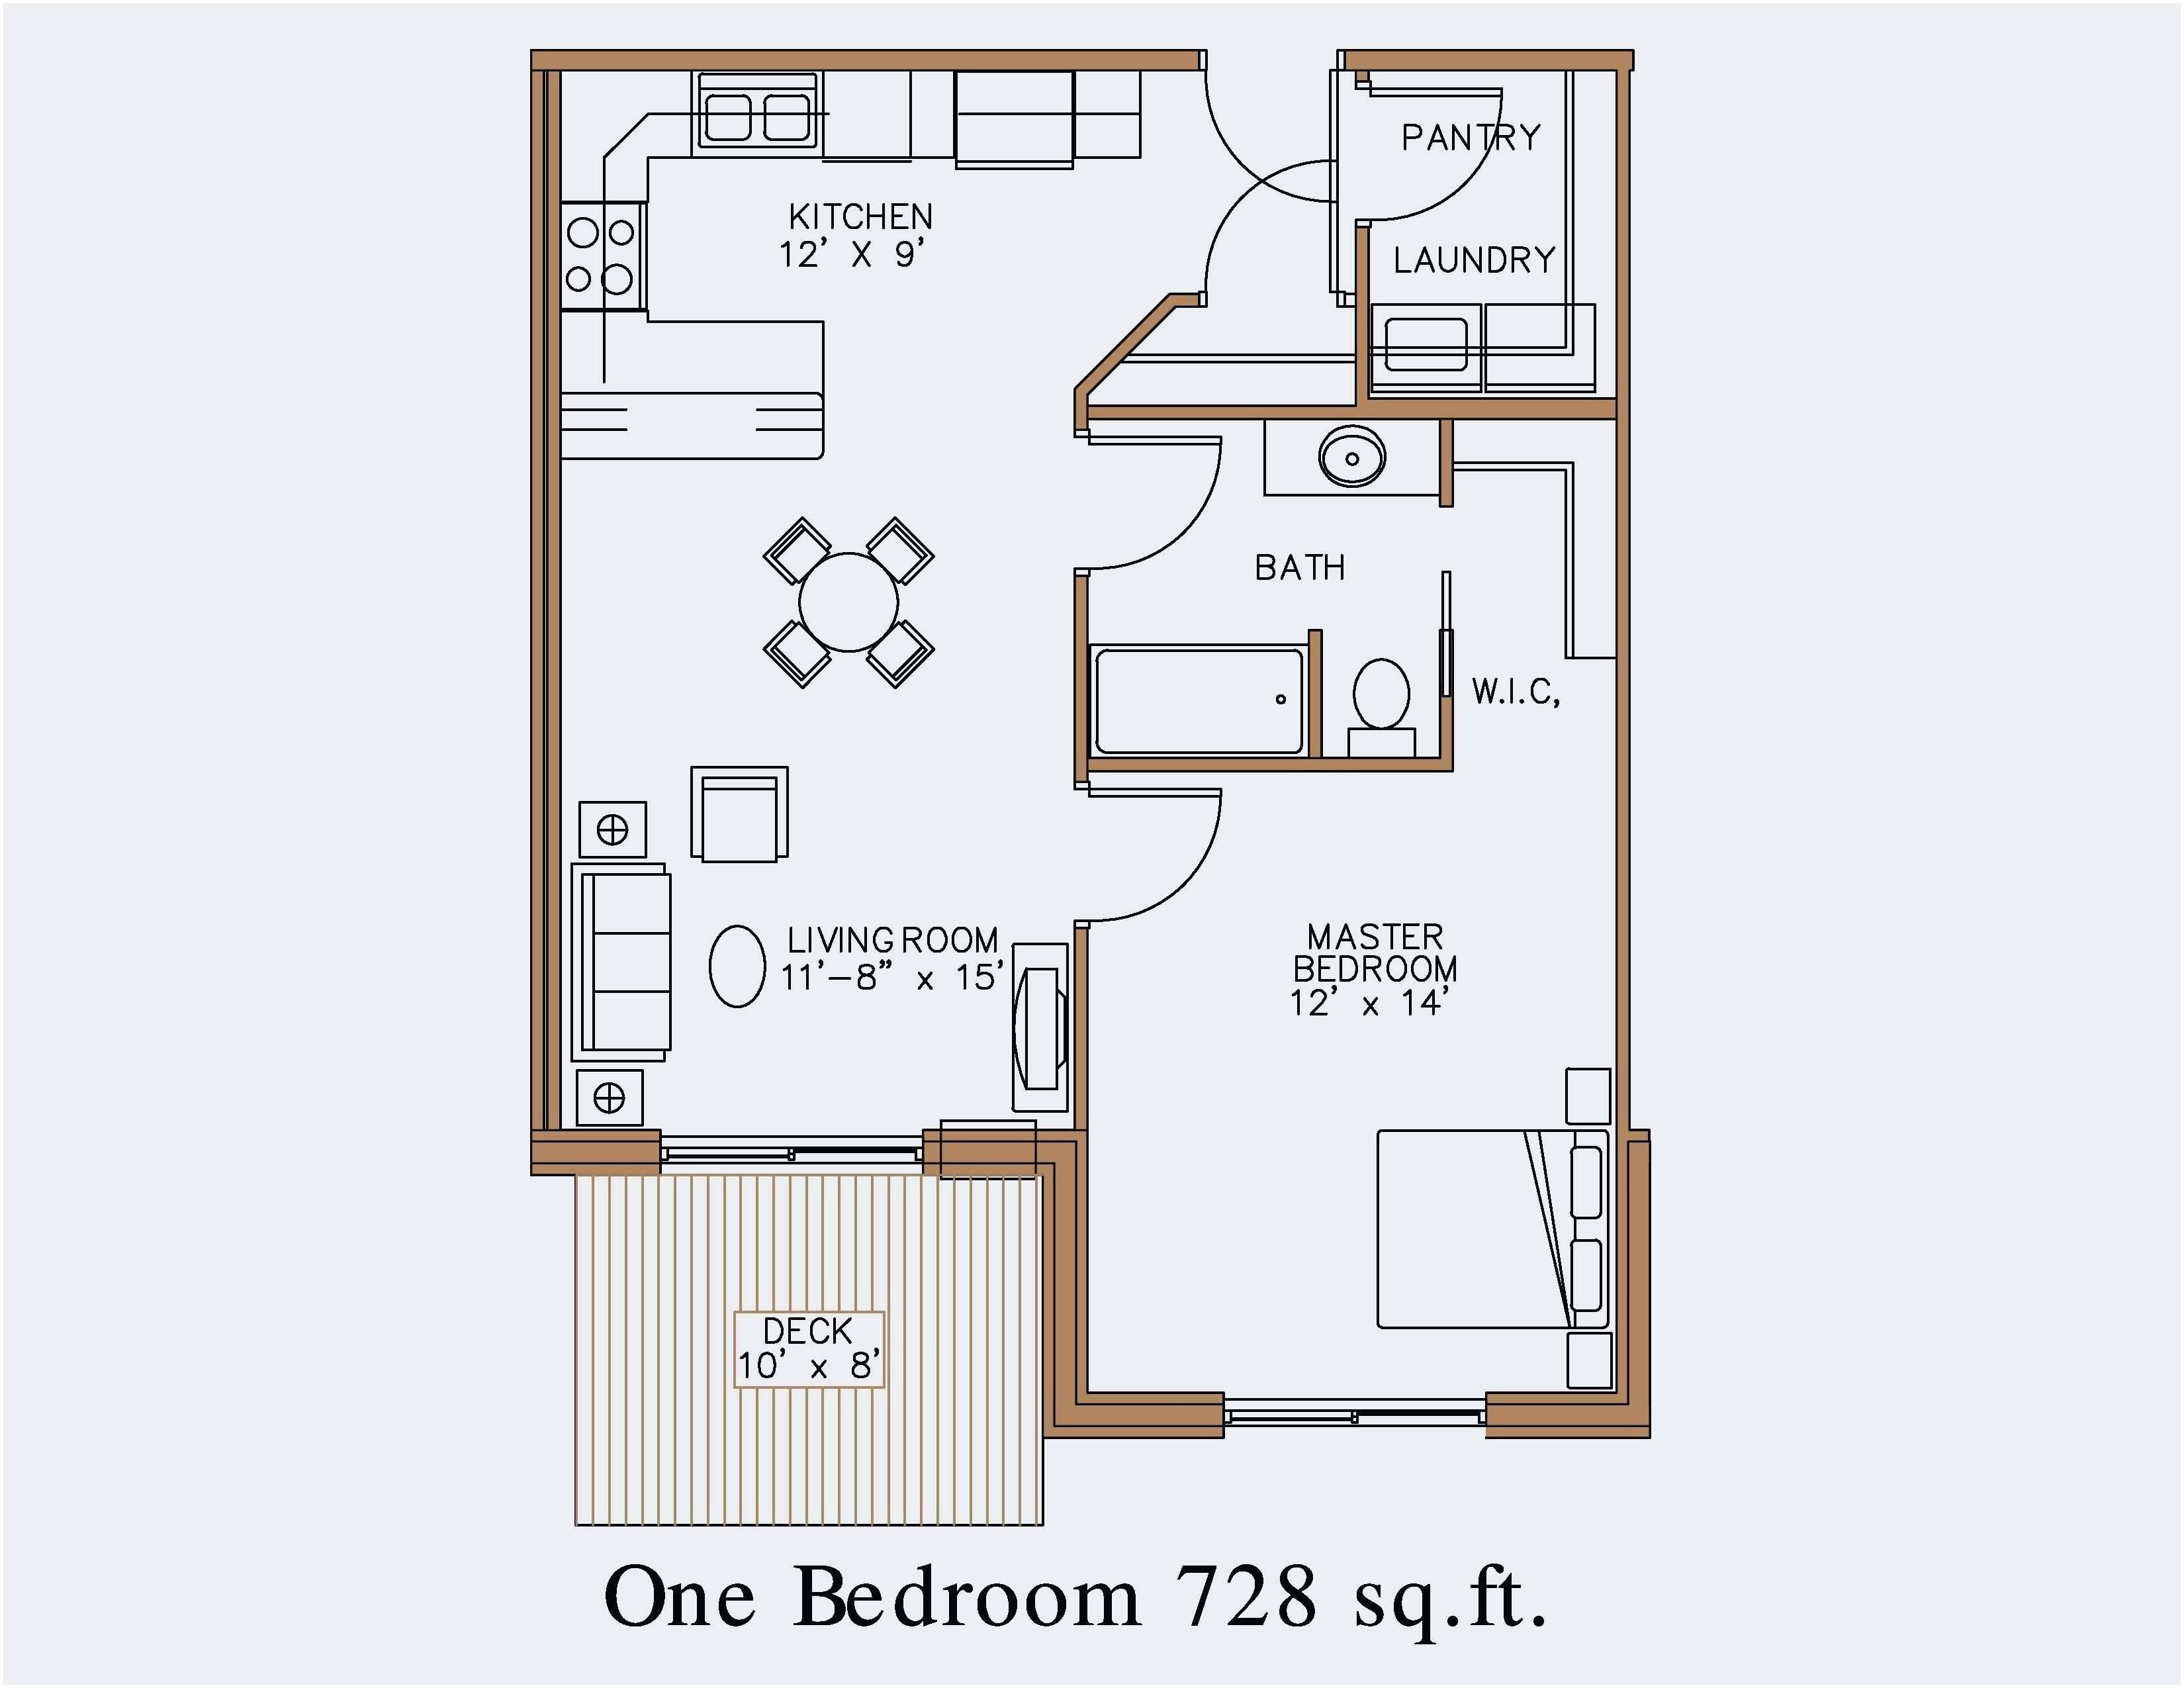 tiny house design layout small house floor plans fresh very post unique very small house floor plans elegant amazing open house plans very for excellent tiny house design layout